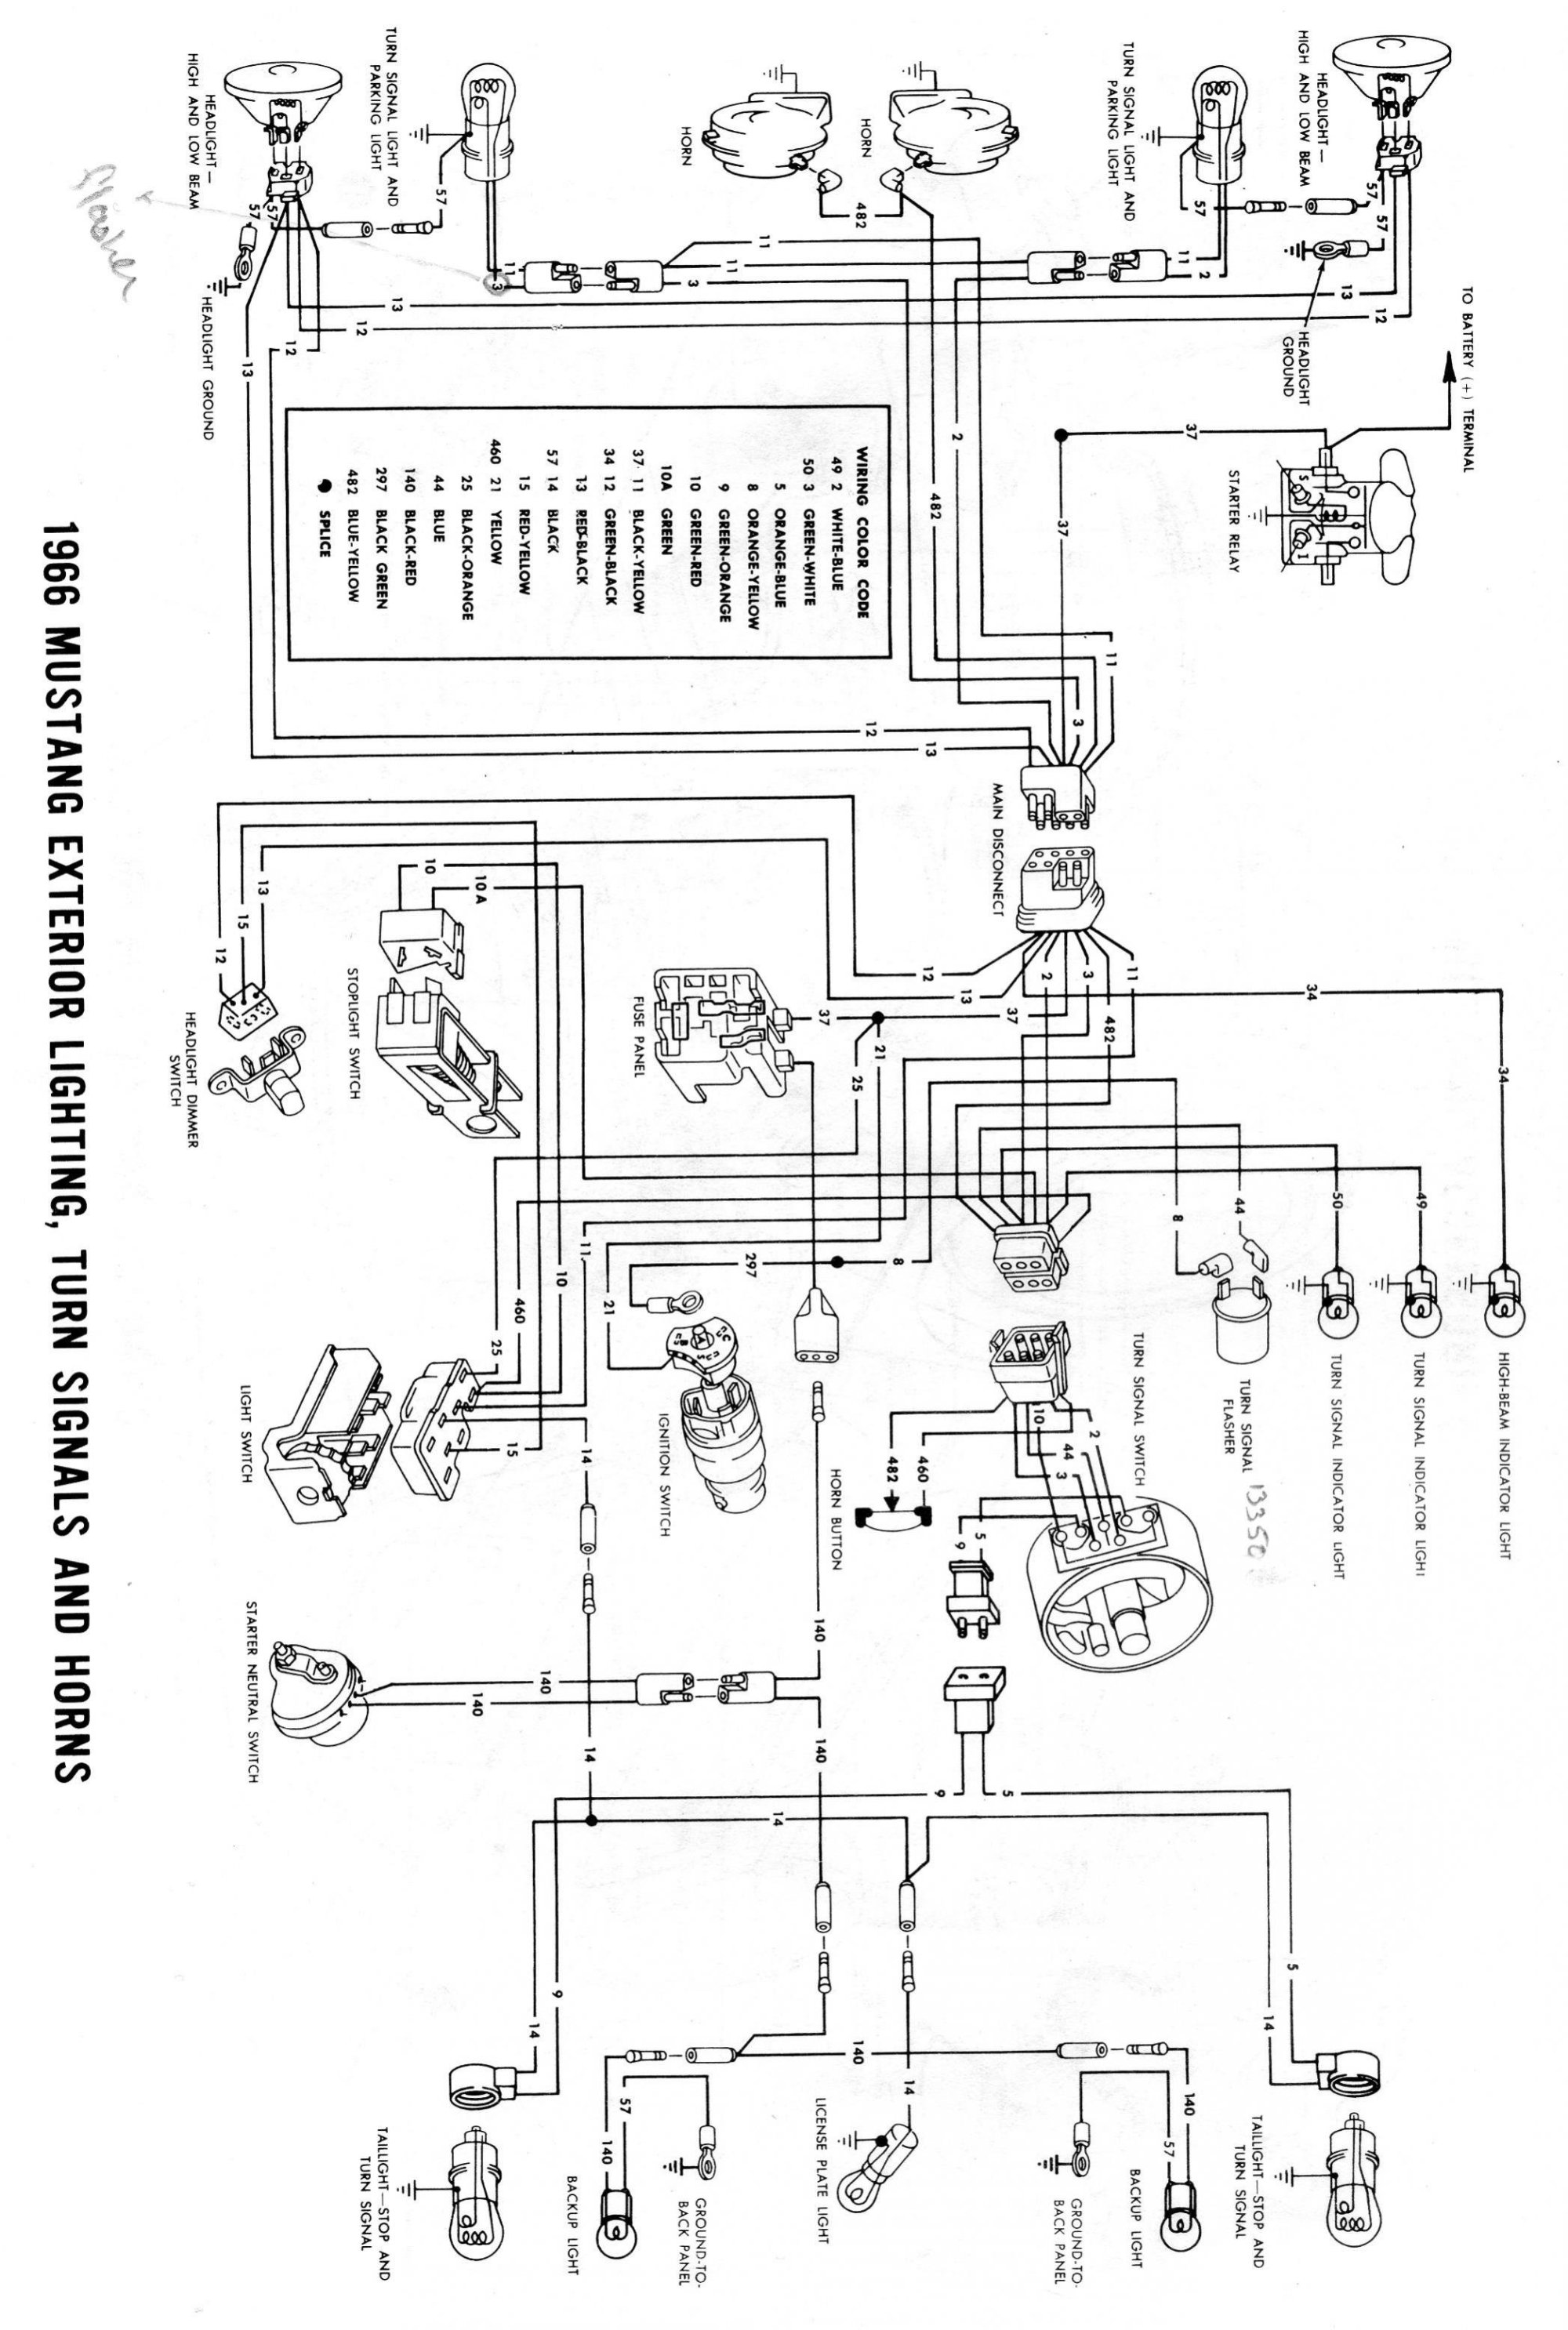 hight resolution of 1972 ford turn signal wiring wiring diagram used 1953 ford turn signal wiring diagram 1972 ford